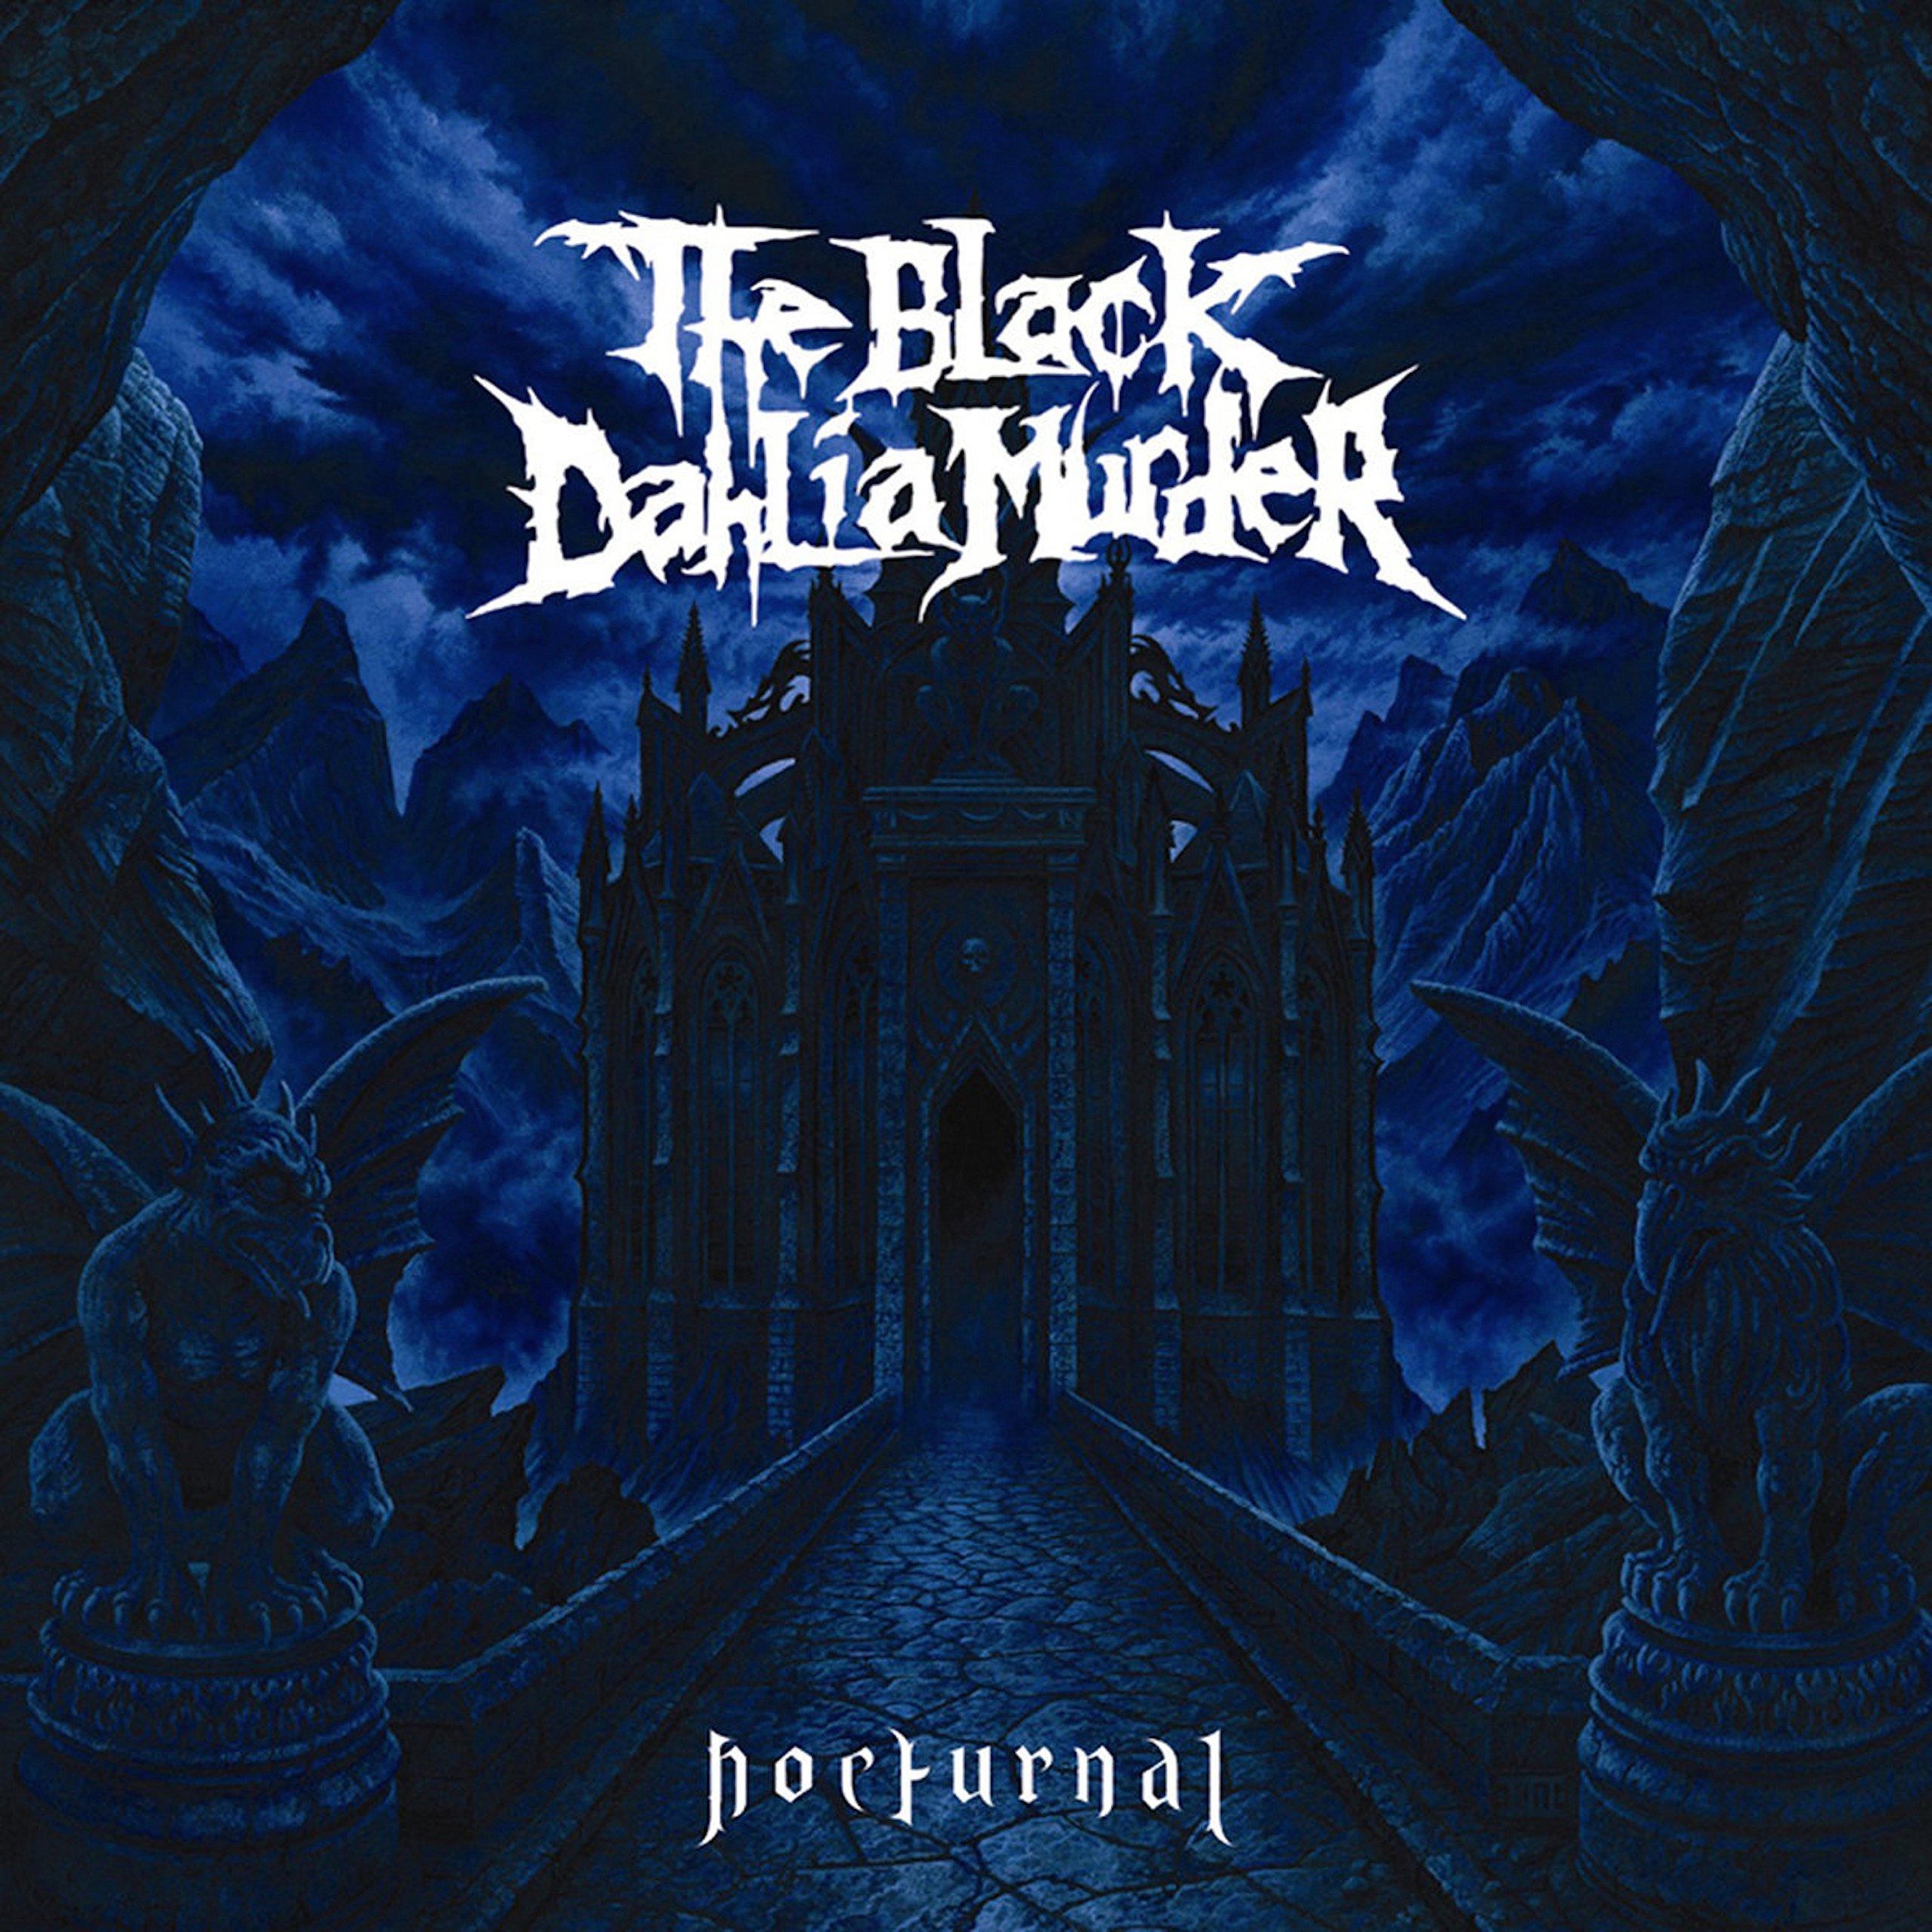 Vinilo : The Black Dahlia Murder - Nocturnal (Colored Vinyl, White, Blue)